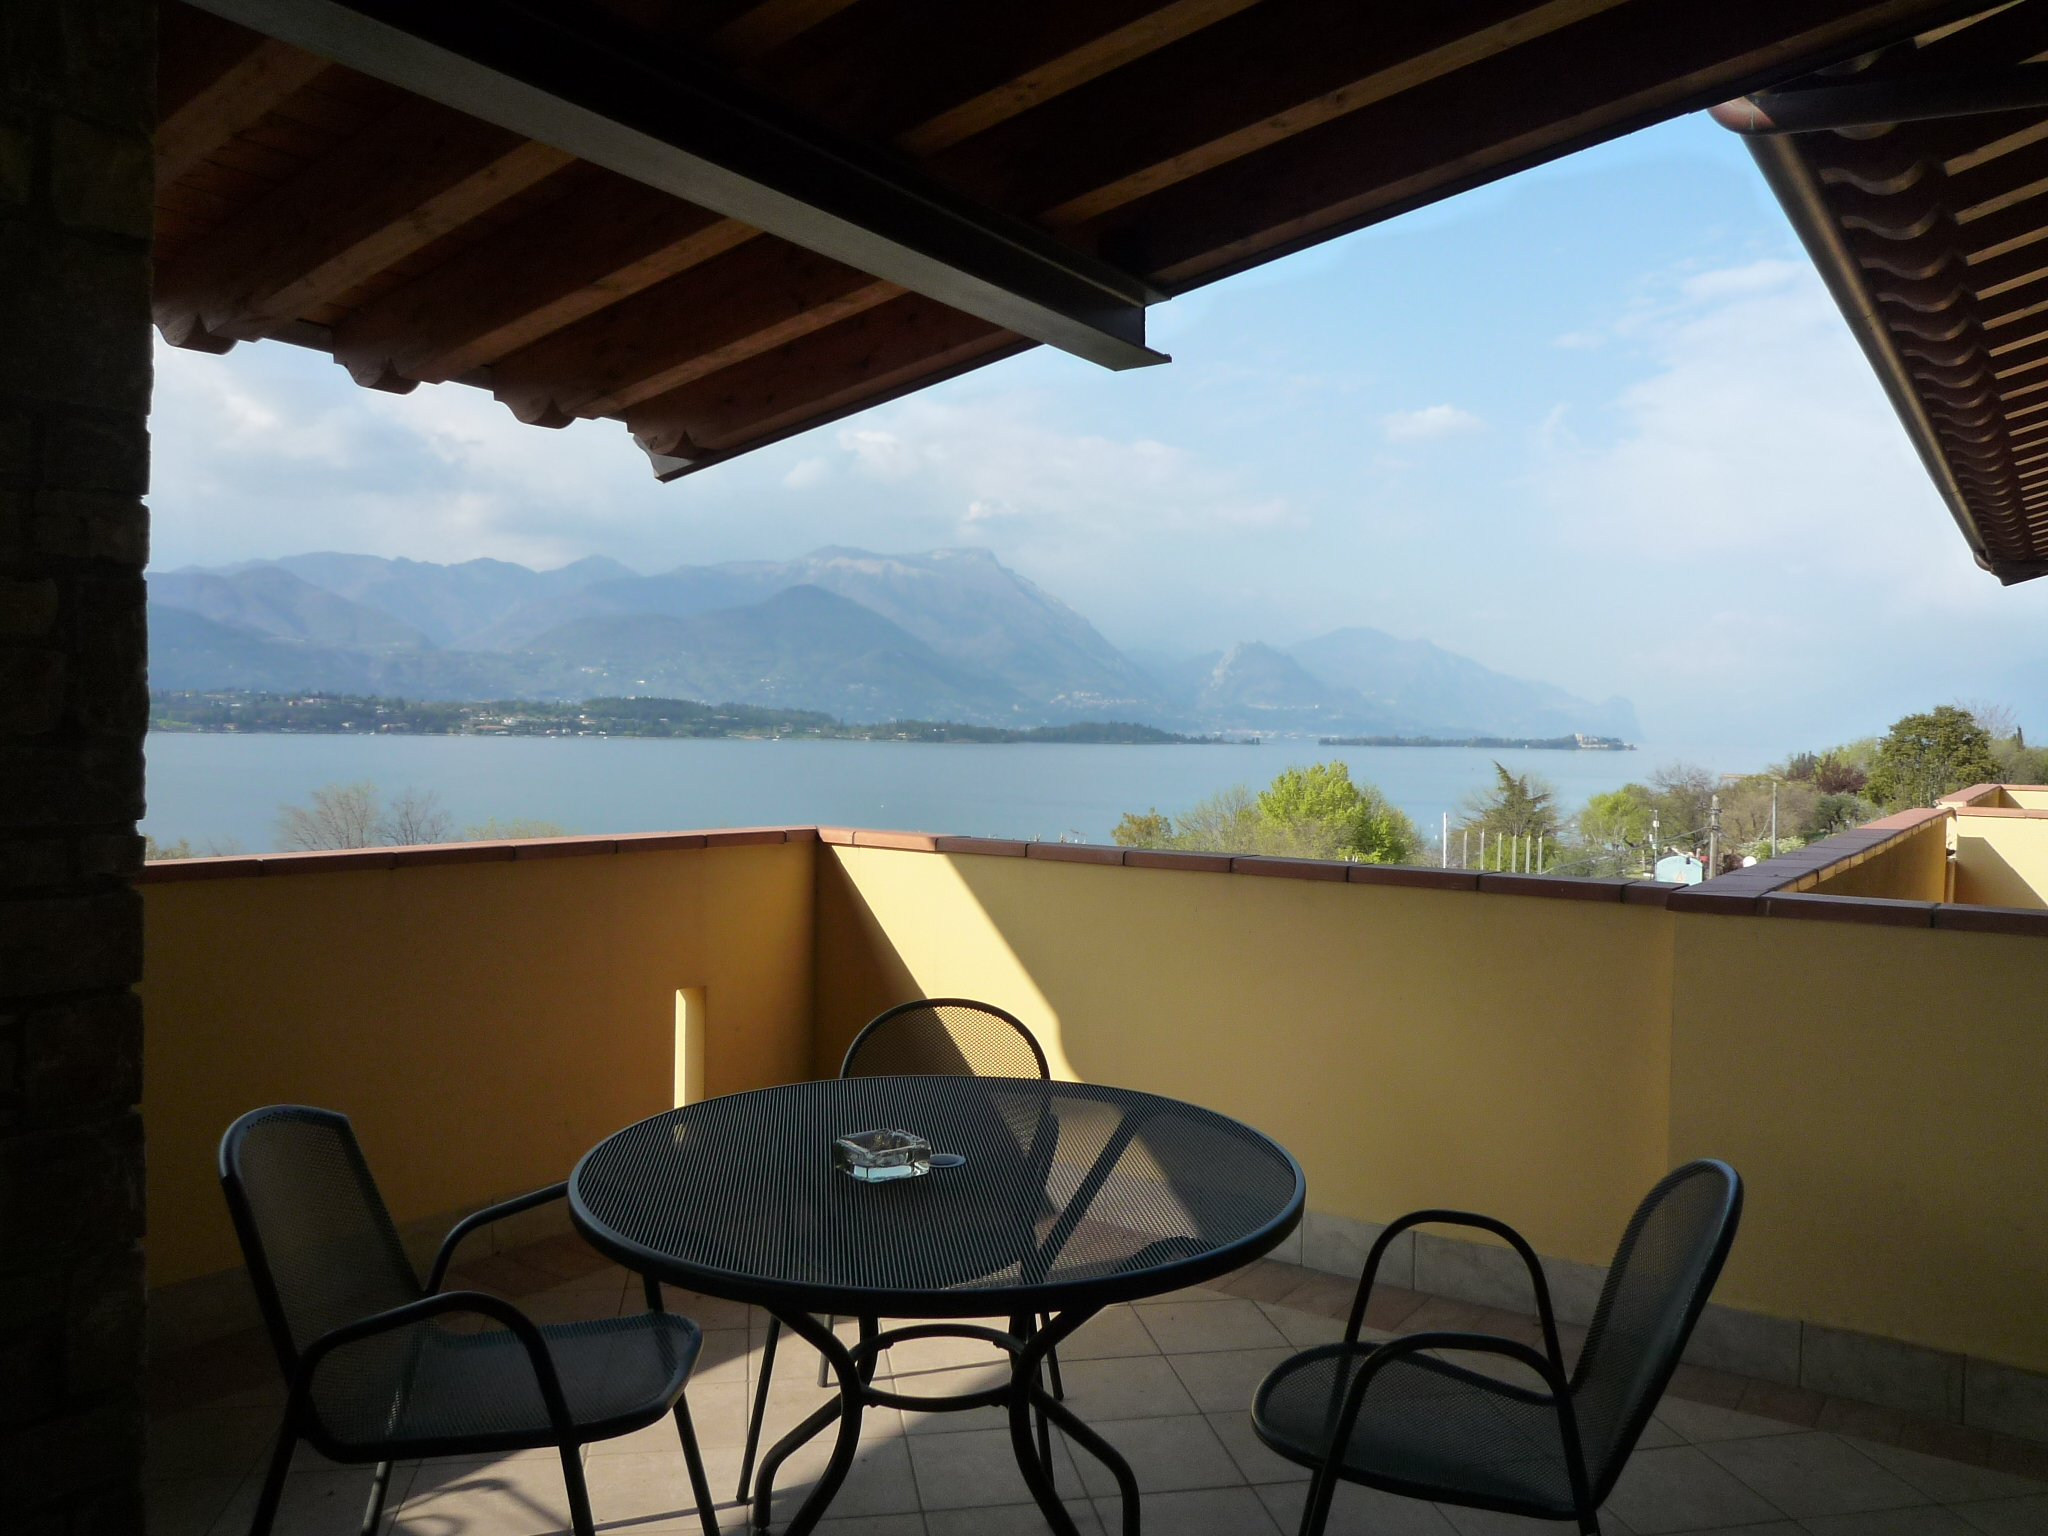 Hotel on Garda Lake Balcony